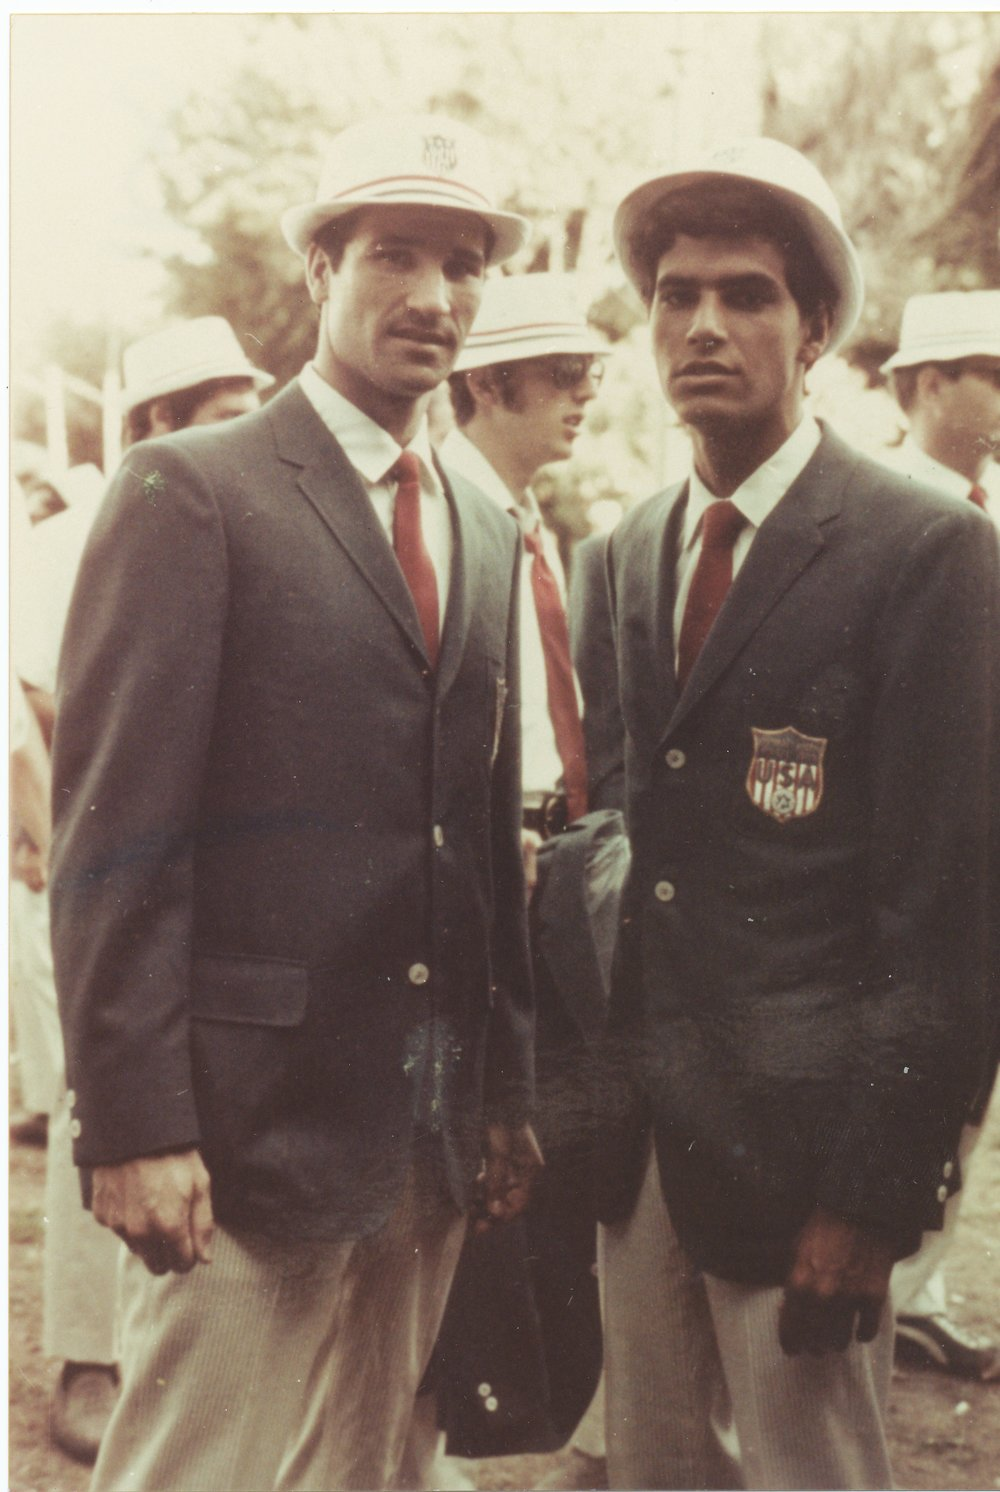 Click photo to download. Caption: Basketball player Tal Brody (left) and swimmer Mark Spitz at the 1965 Maccabiah Games. Credit: Courtesy Joseph Yekutieli Maccabi Archive.